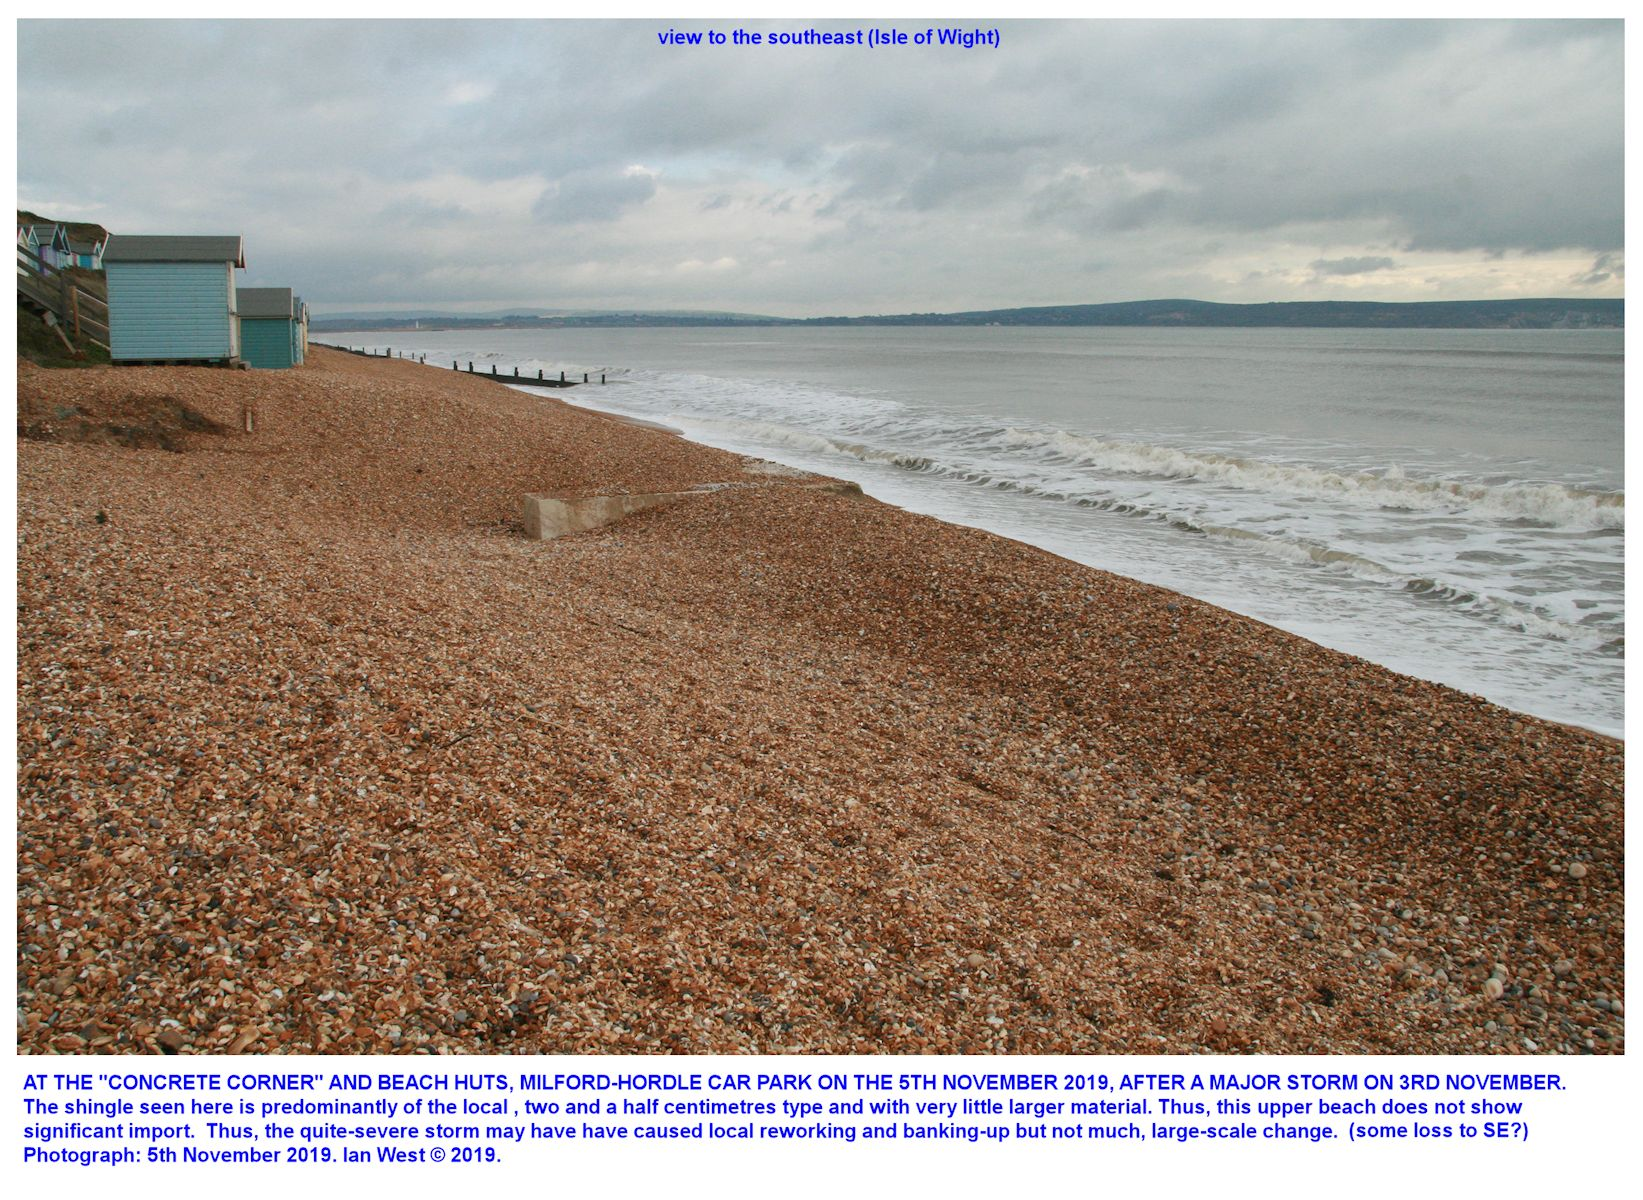 The shingle beach at Milford - Hordle Cliff West, car park, in relatively stable condition on the 5th November 2019, although after a storm